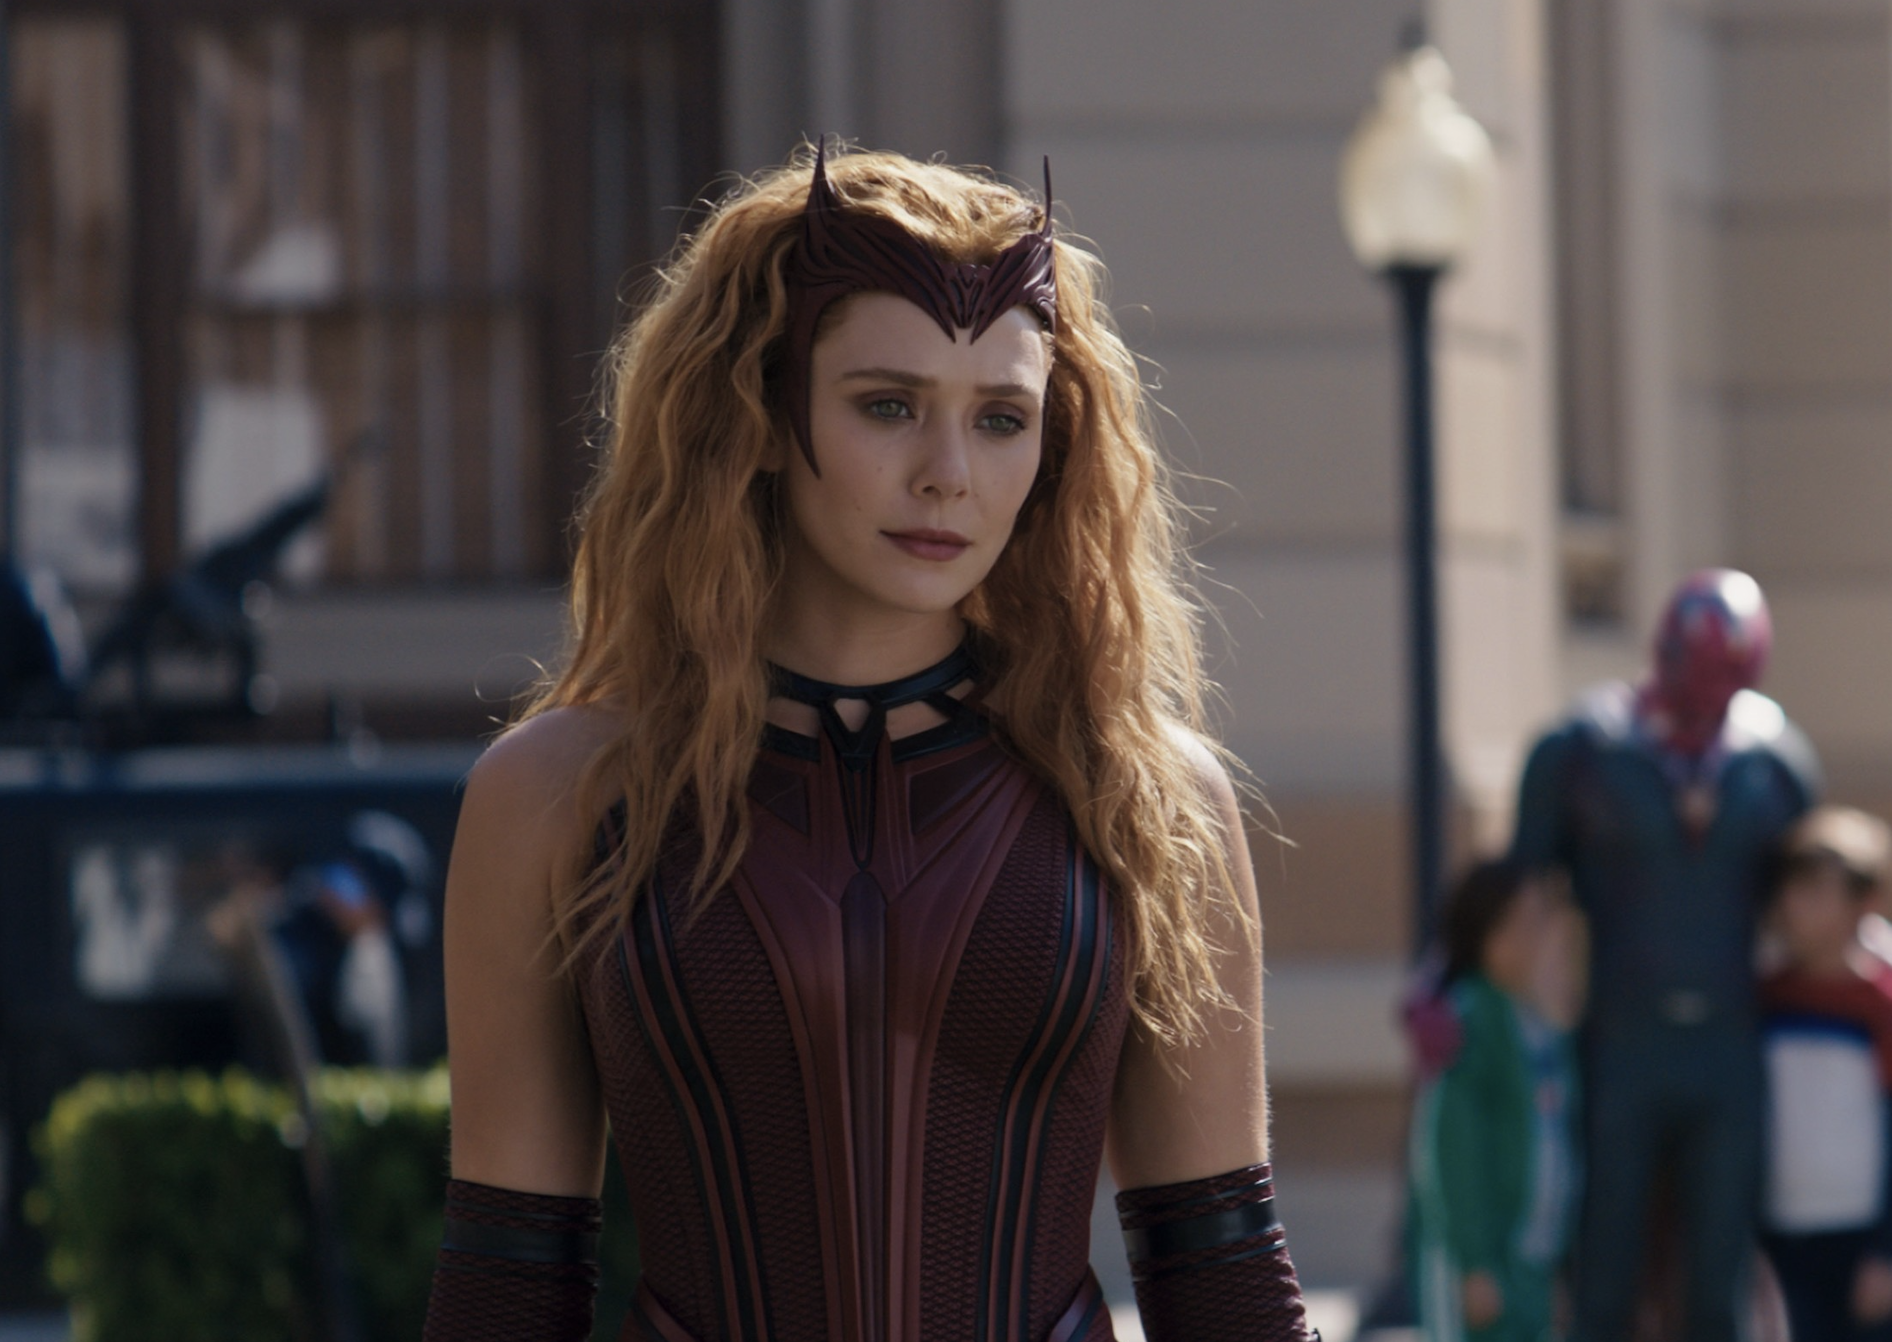 Wanda with Vision in the background